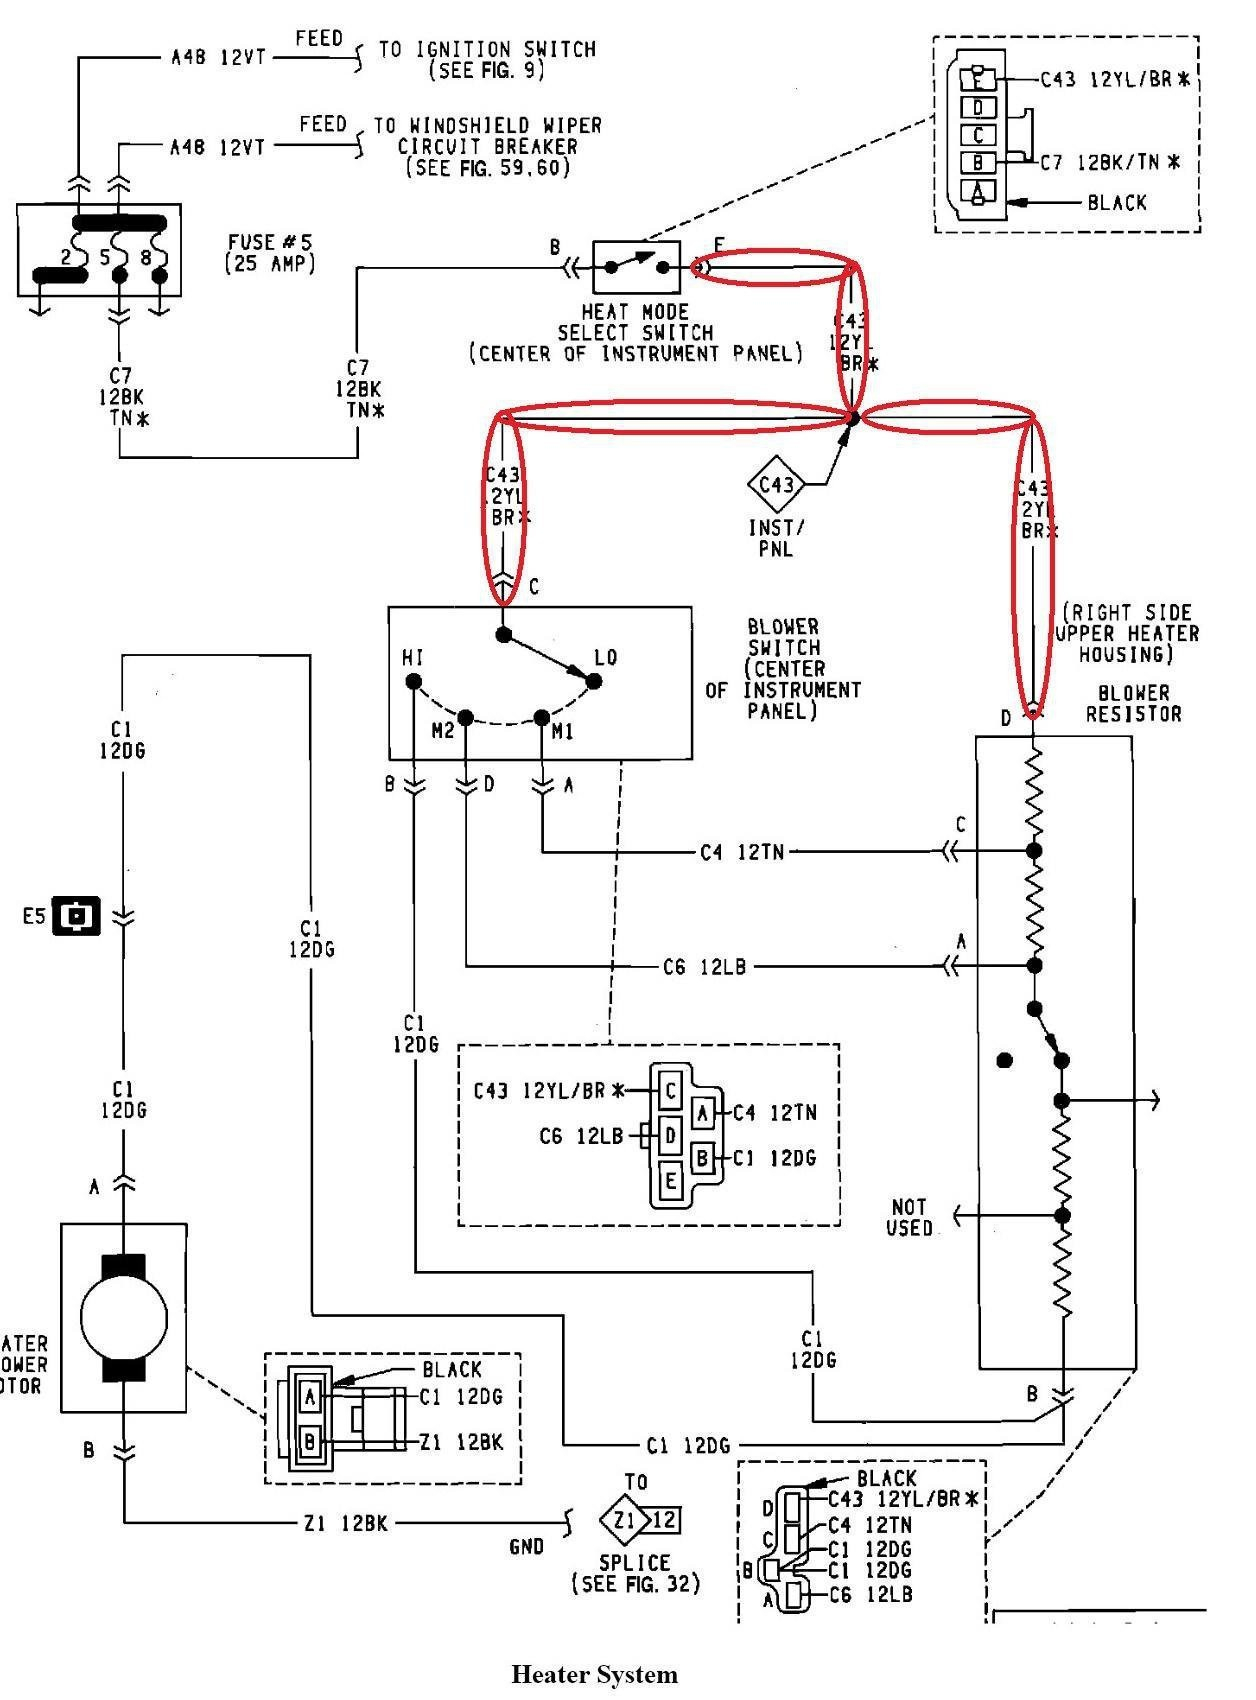 DIAGRAM] Regen Golf Cart 36 Volt Ezgo Dc S Wiring Diagram FULL Version HD  Quality Wiring Diagram - LOVEDIAGRAM.SAINTMIHIEL-TOURISME.FRSaintmihiel-tourisme.fr